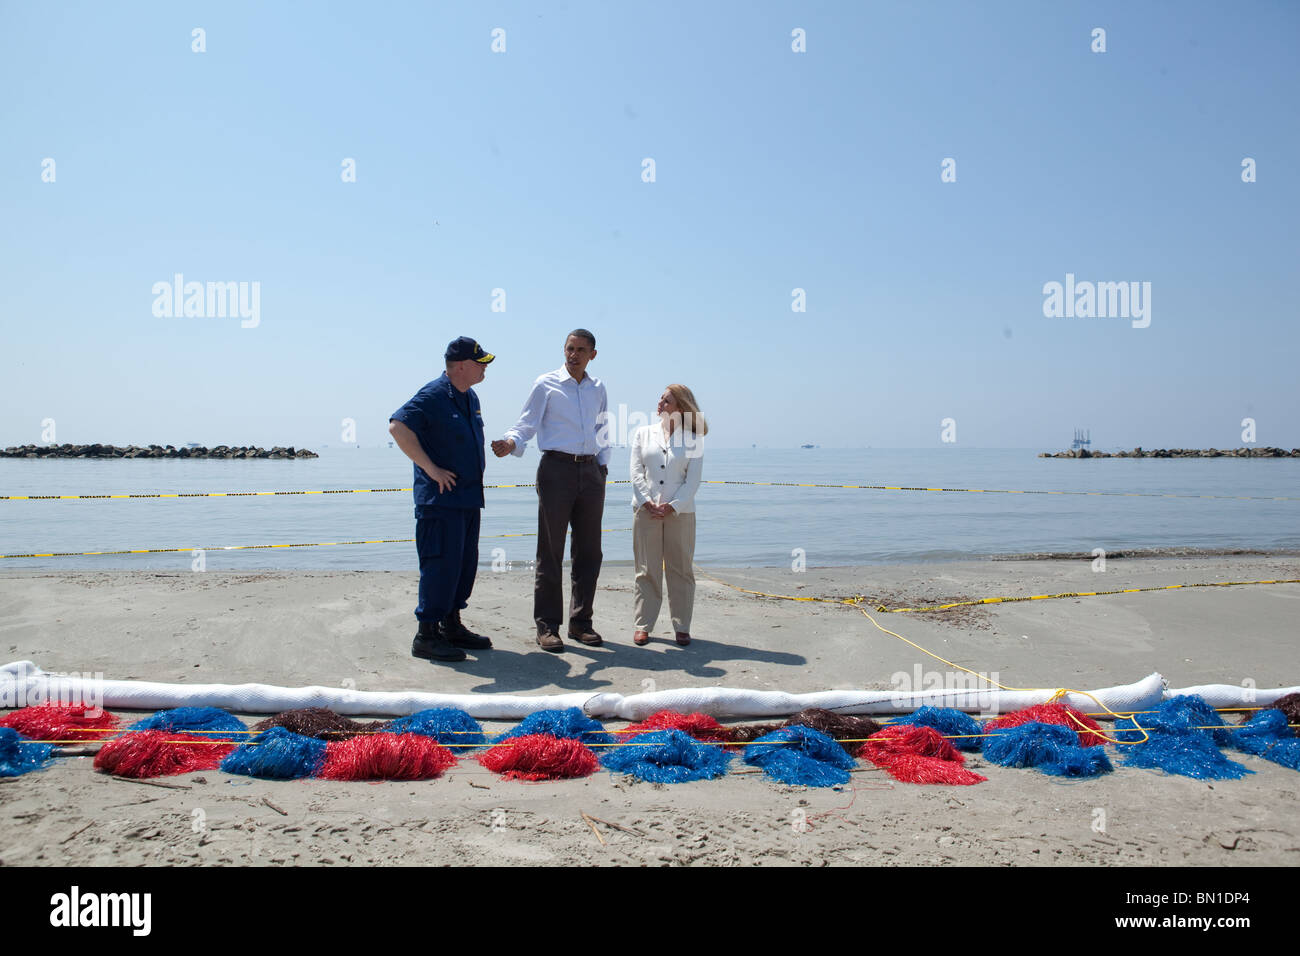 Barack Obama, Thad Allen, and Lafourche Parish President Charlotte Randolph look at the effects of the BP oil spill. - Stock Image